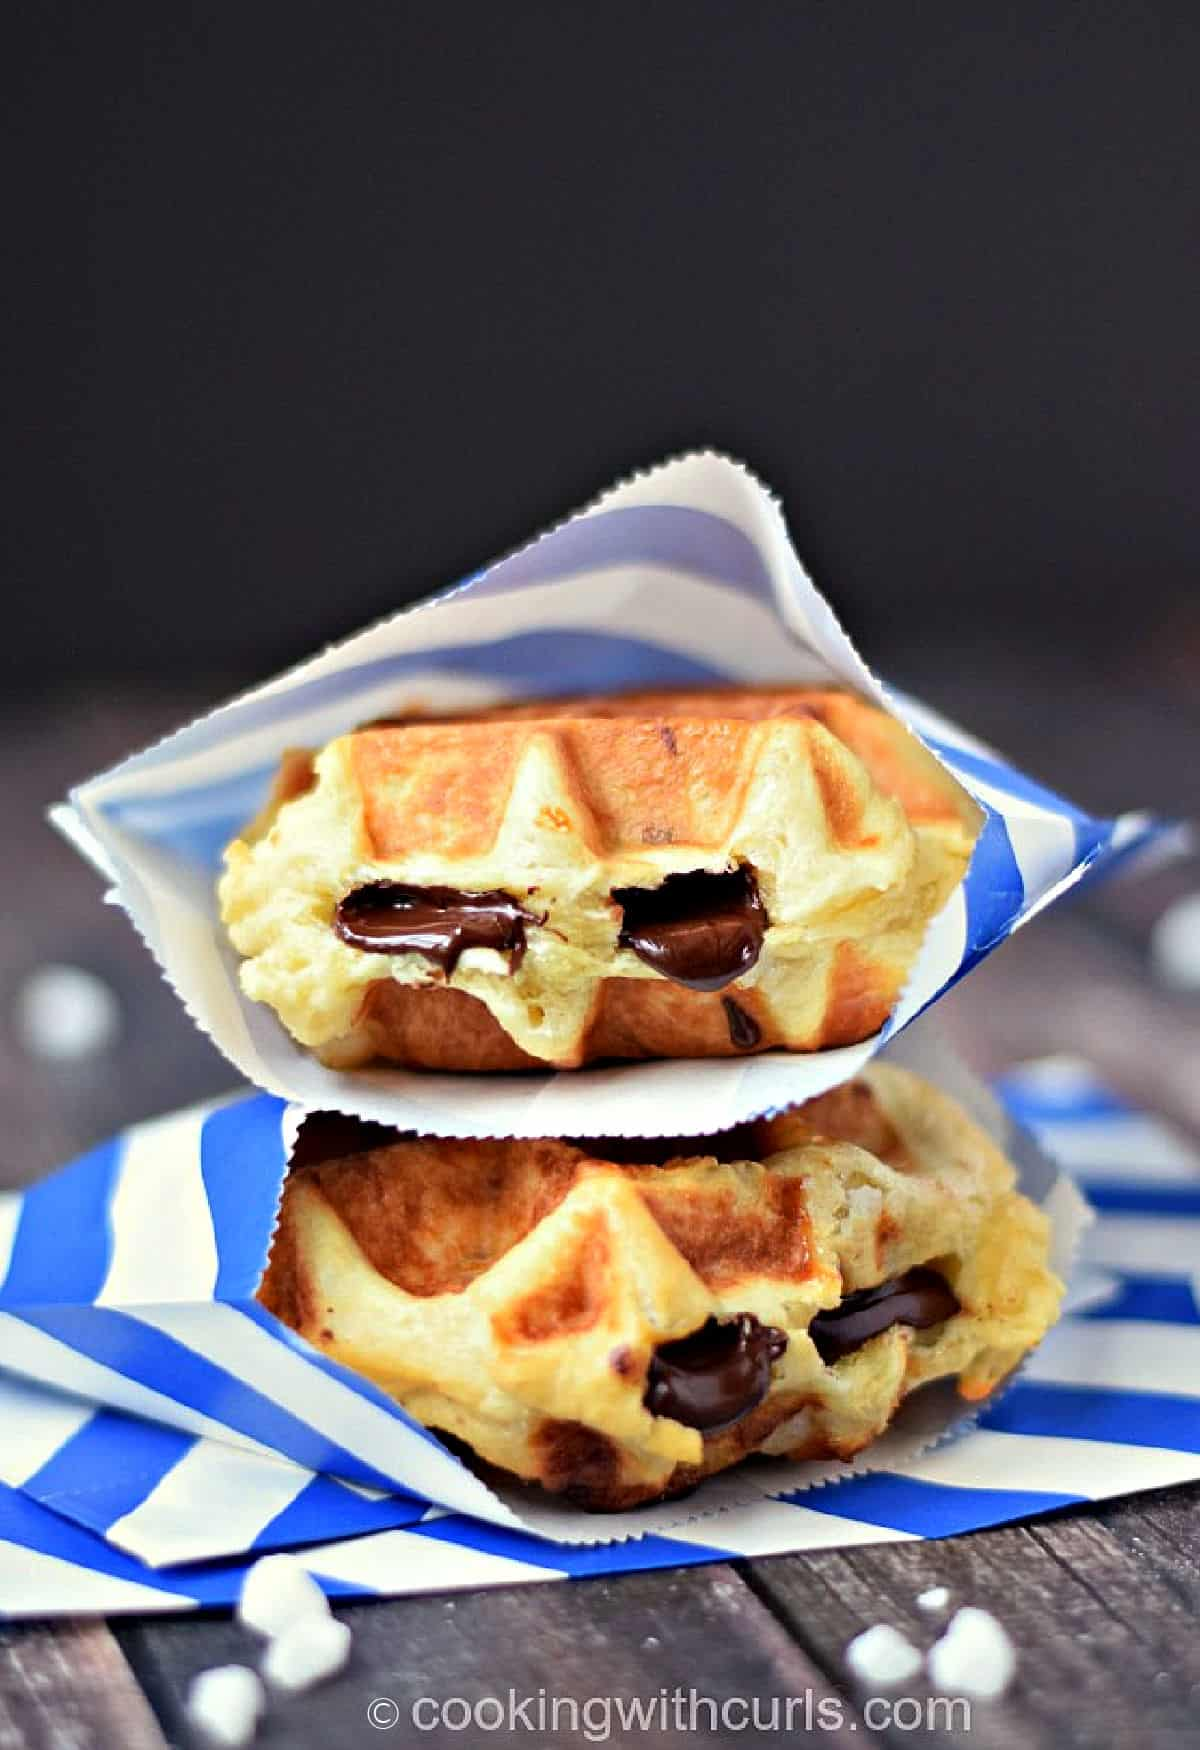 Two chocolate stuffed, thick waffles wrapped in blue and white striped paper envelopes and stacked on top of each other.